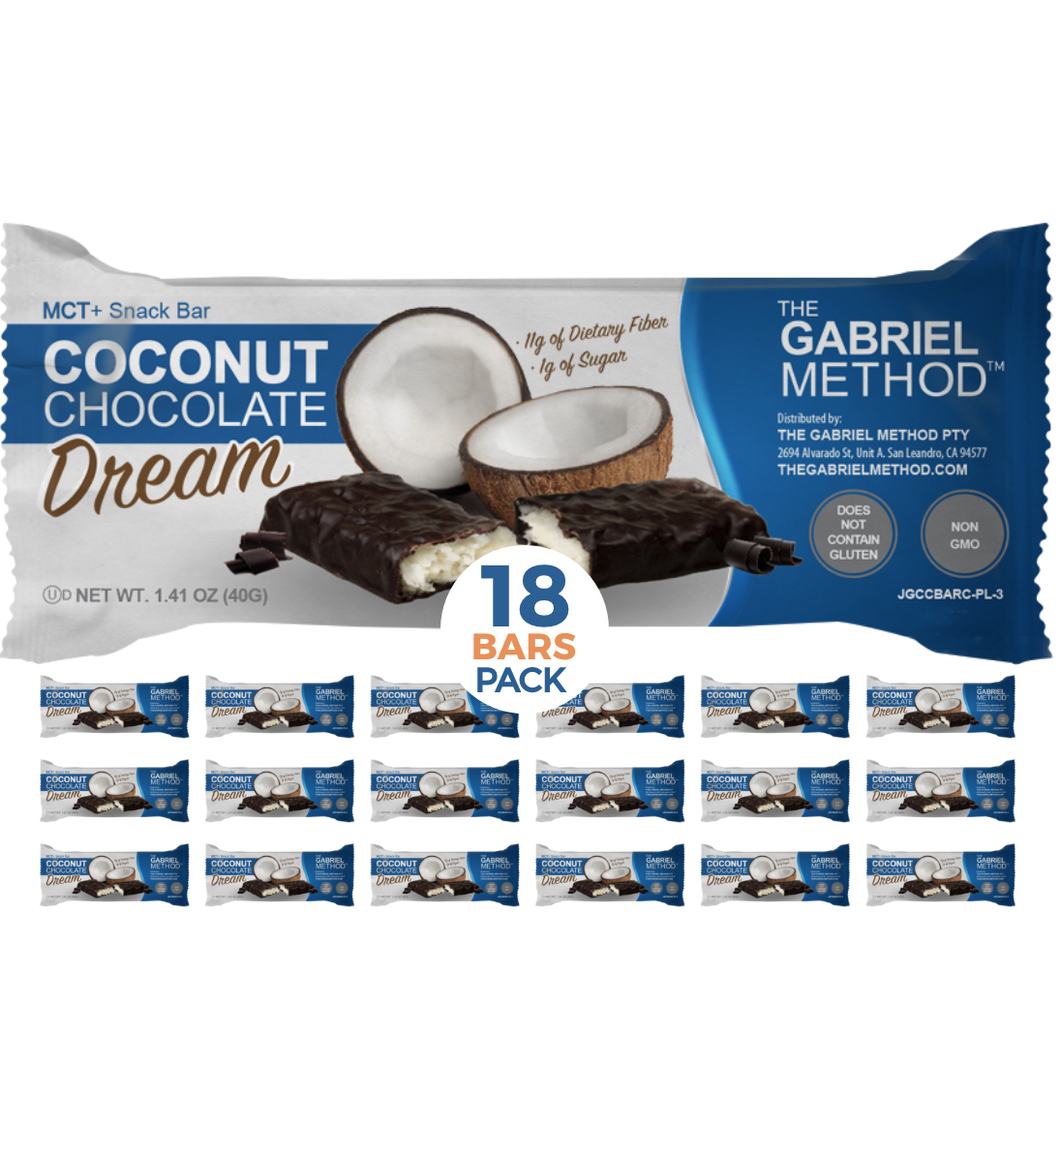 <span><b>MCT</b> + SNACK BAR</span> Coconut Chocolate <i>Dream</i>